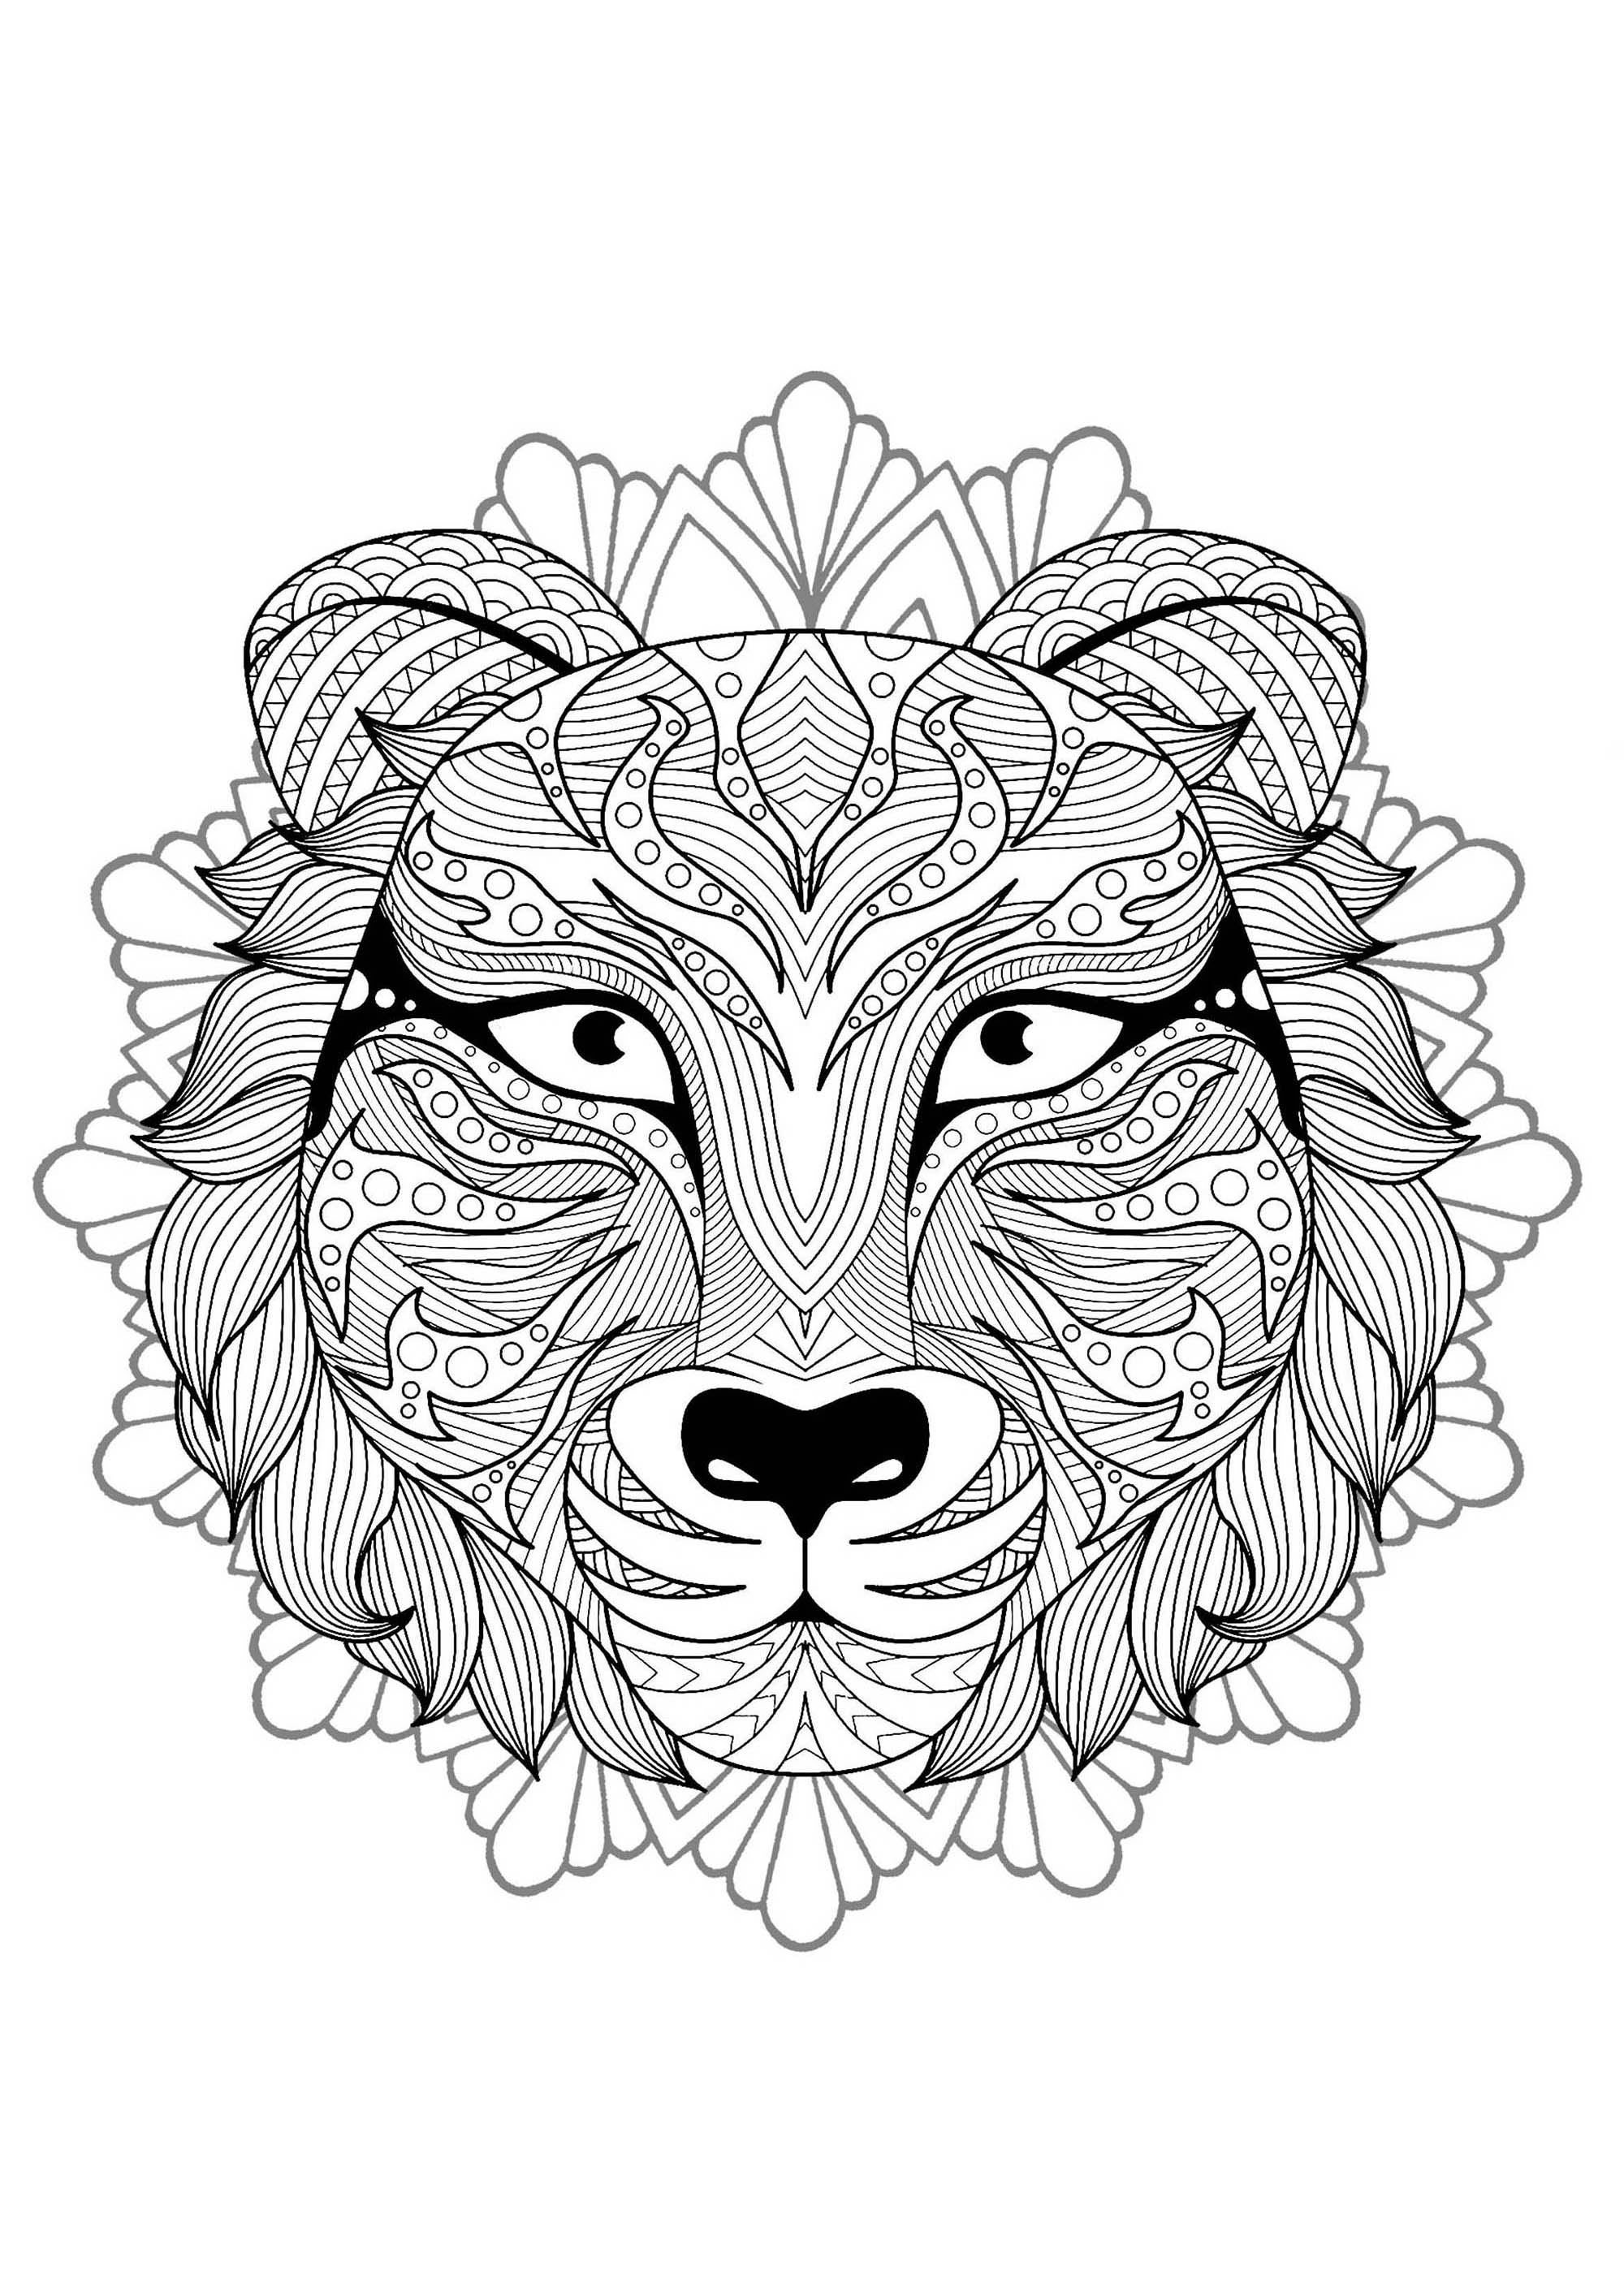 Mandala With Elegant Wolf Head And Floral Patterns M